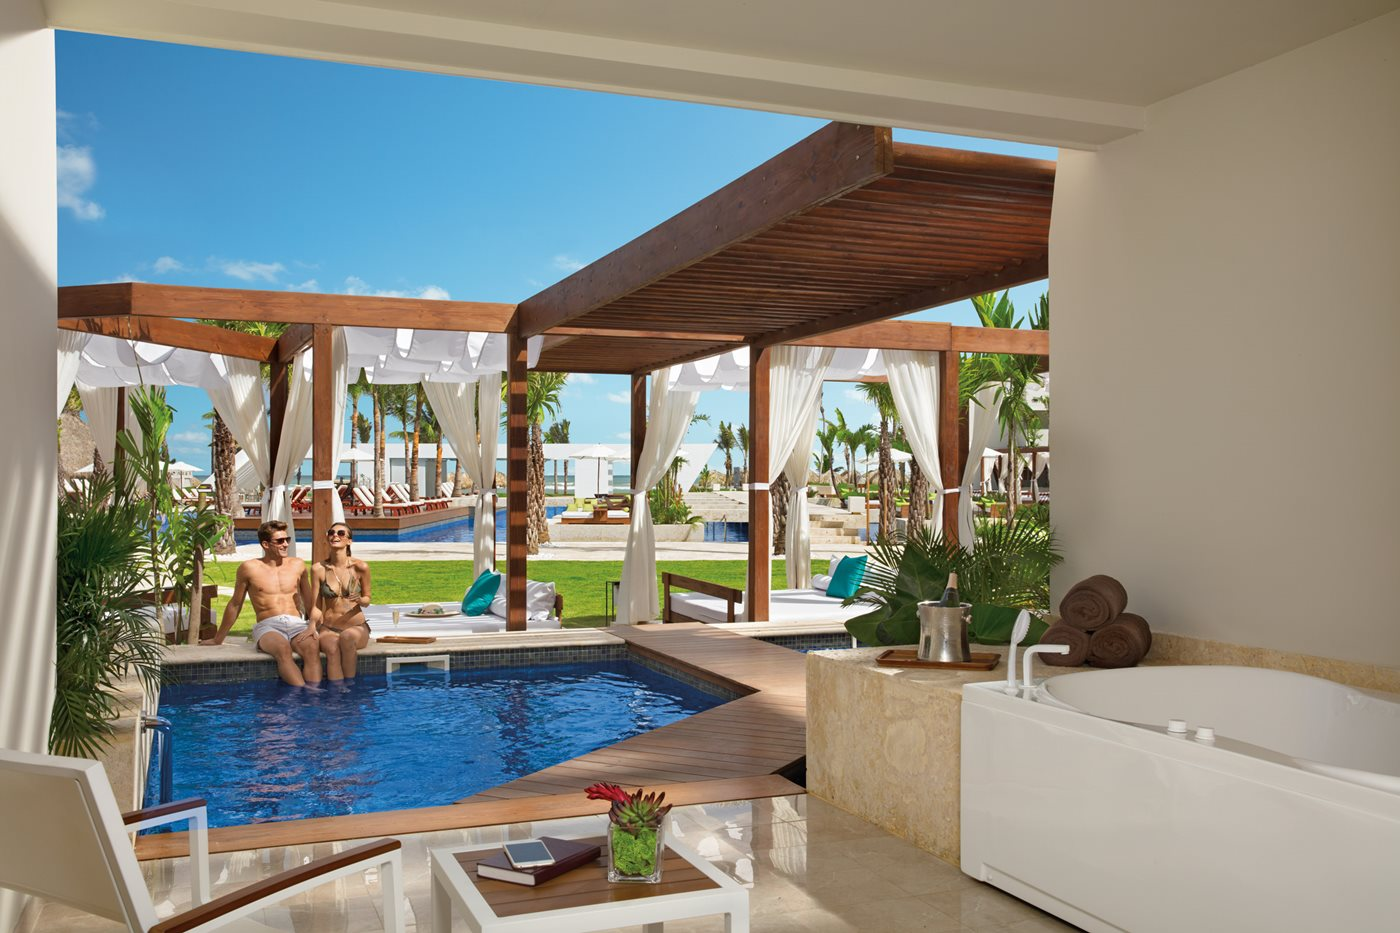 Now-Onyx-Room-006-Preferred-Club-Junior-Suite-Private-Pool-AR